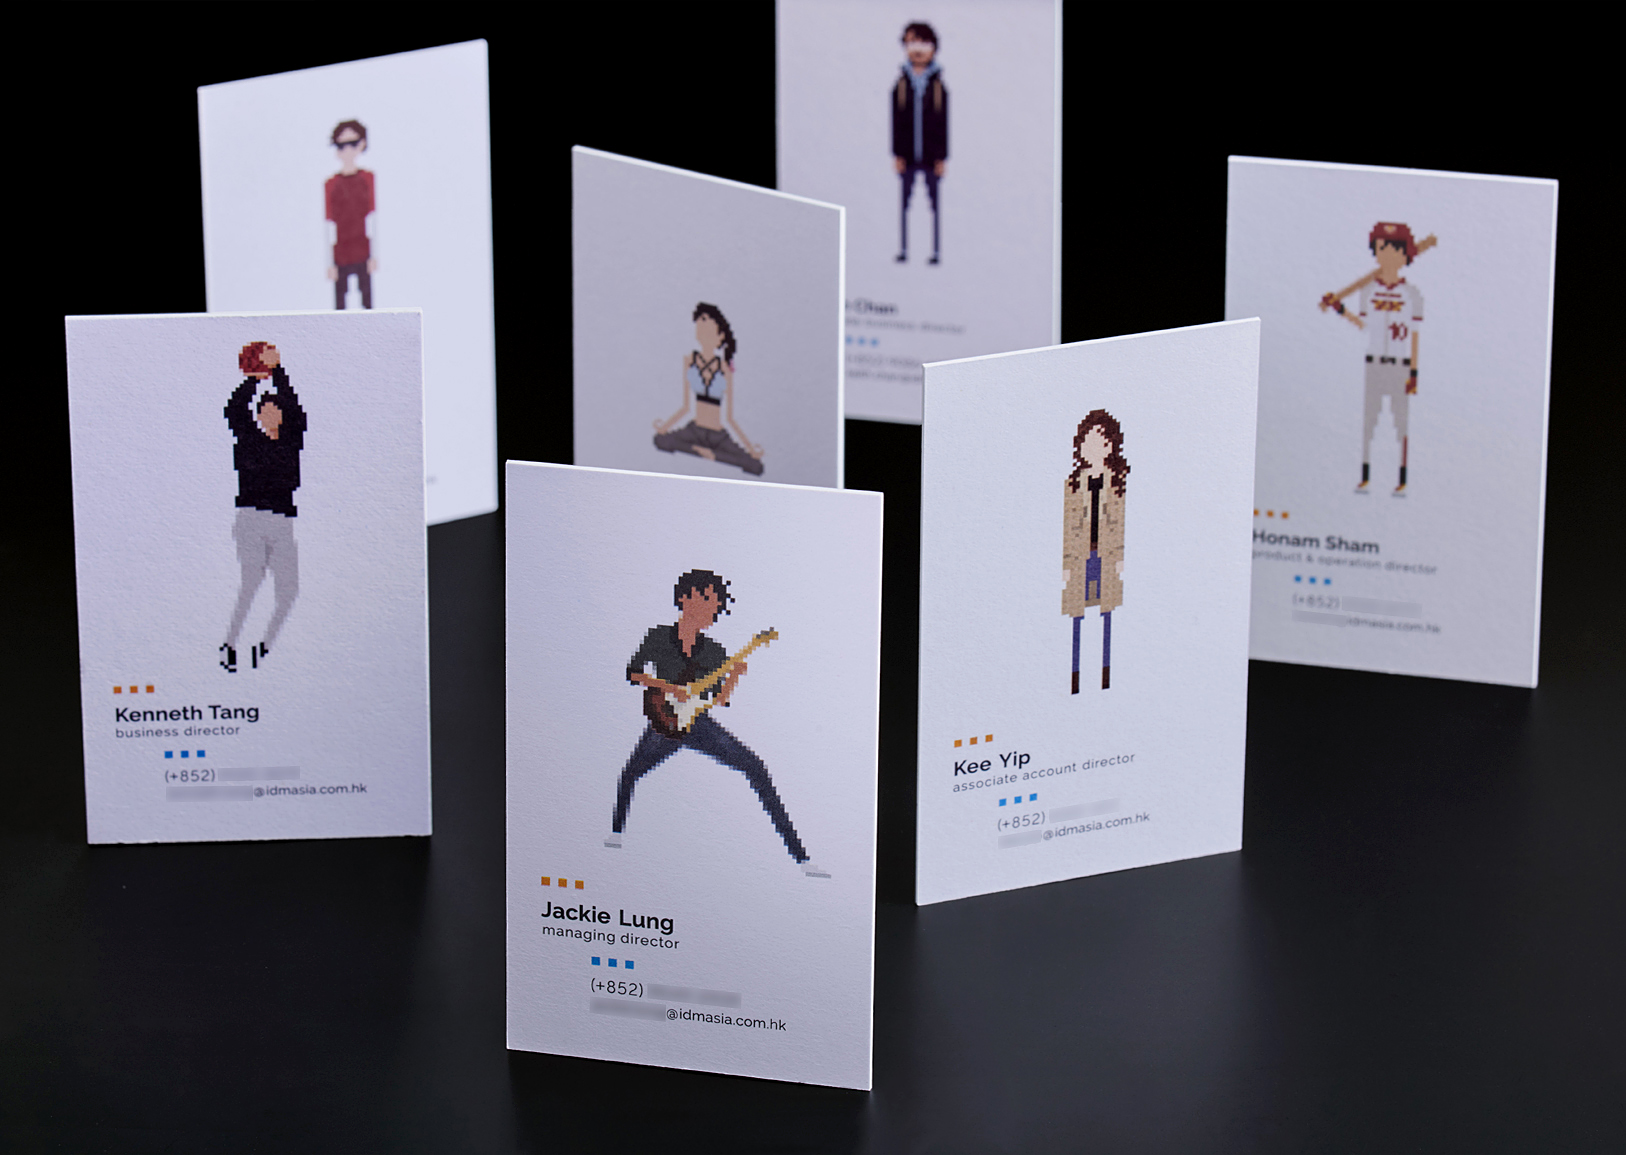 A leading Asian Digital Marketing Agency Brand based in Hong Kong and office in South Korea :: Identity Revamp and New Business Card Design :: business card, name card, 7 executives, standing random, dynamic branding, personalisation pixelated figures of every individuals, black table top, anglar view